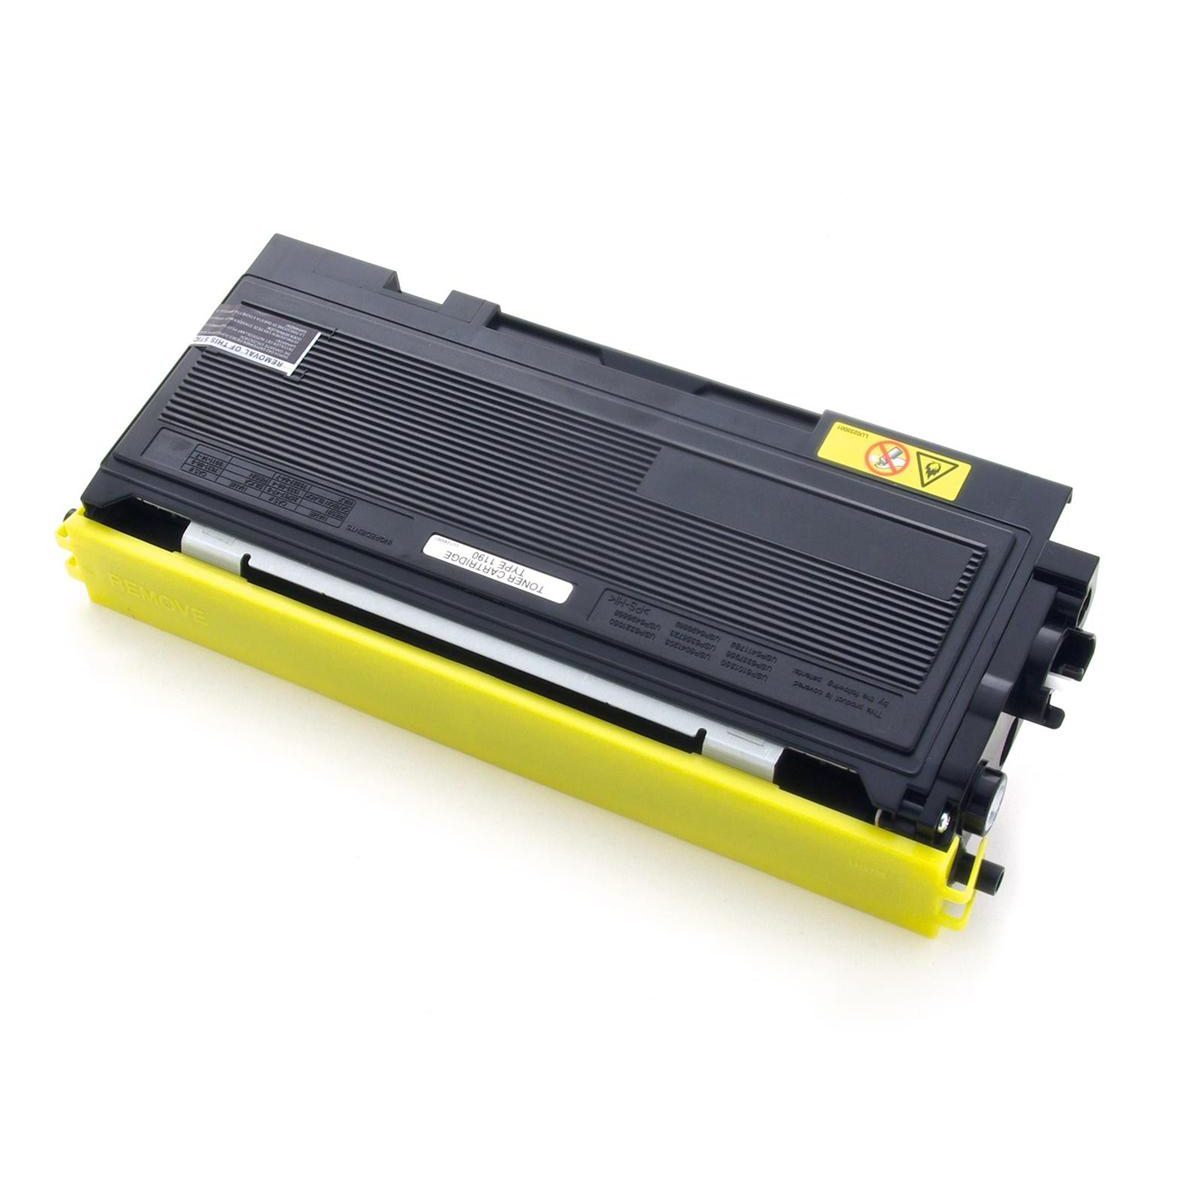 Ricoh Laser Toner Cartridge Page Life 2500pp Black Ref RIC431013